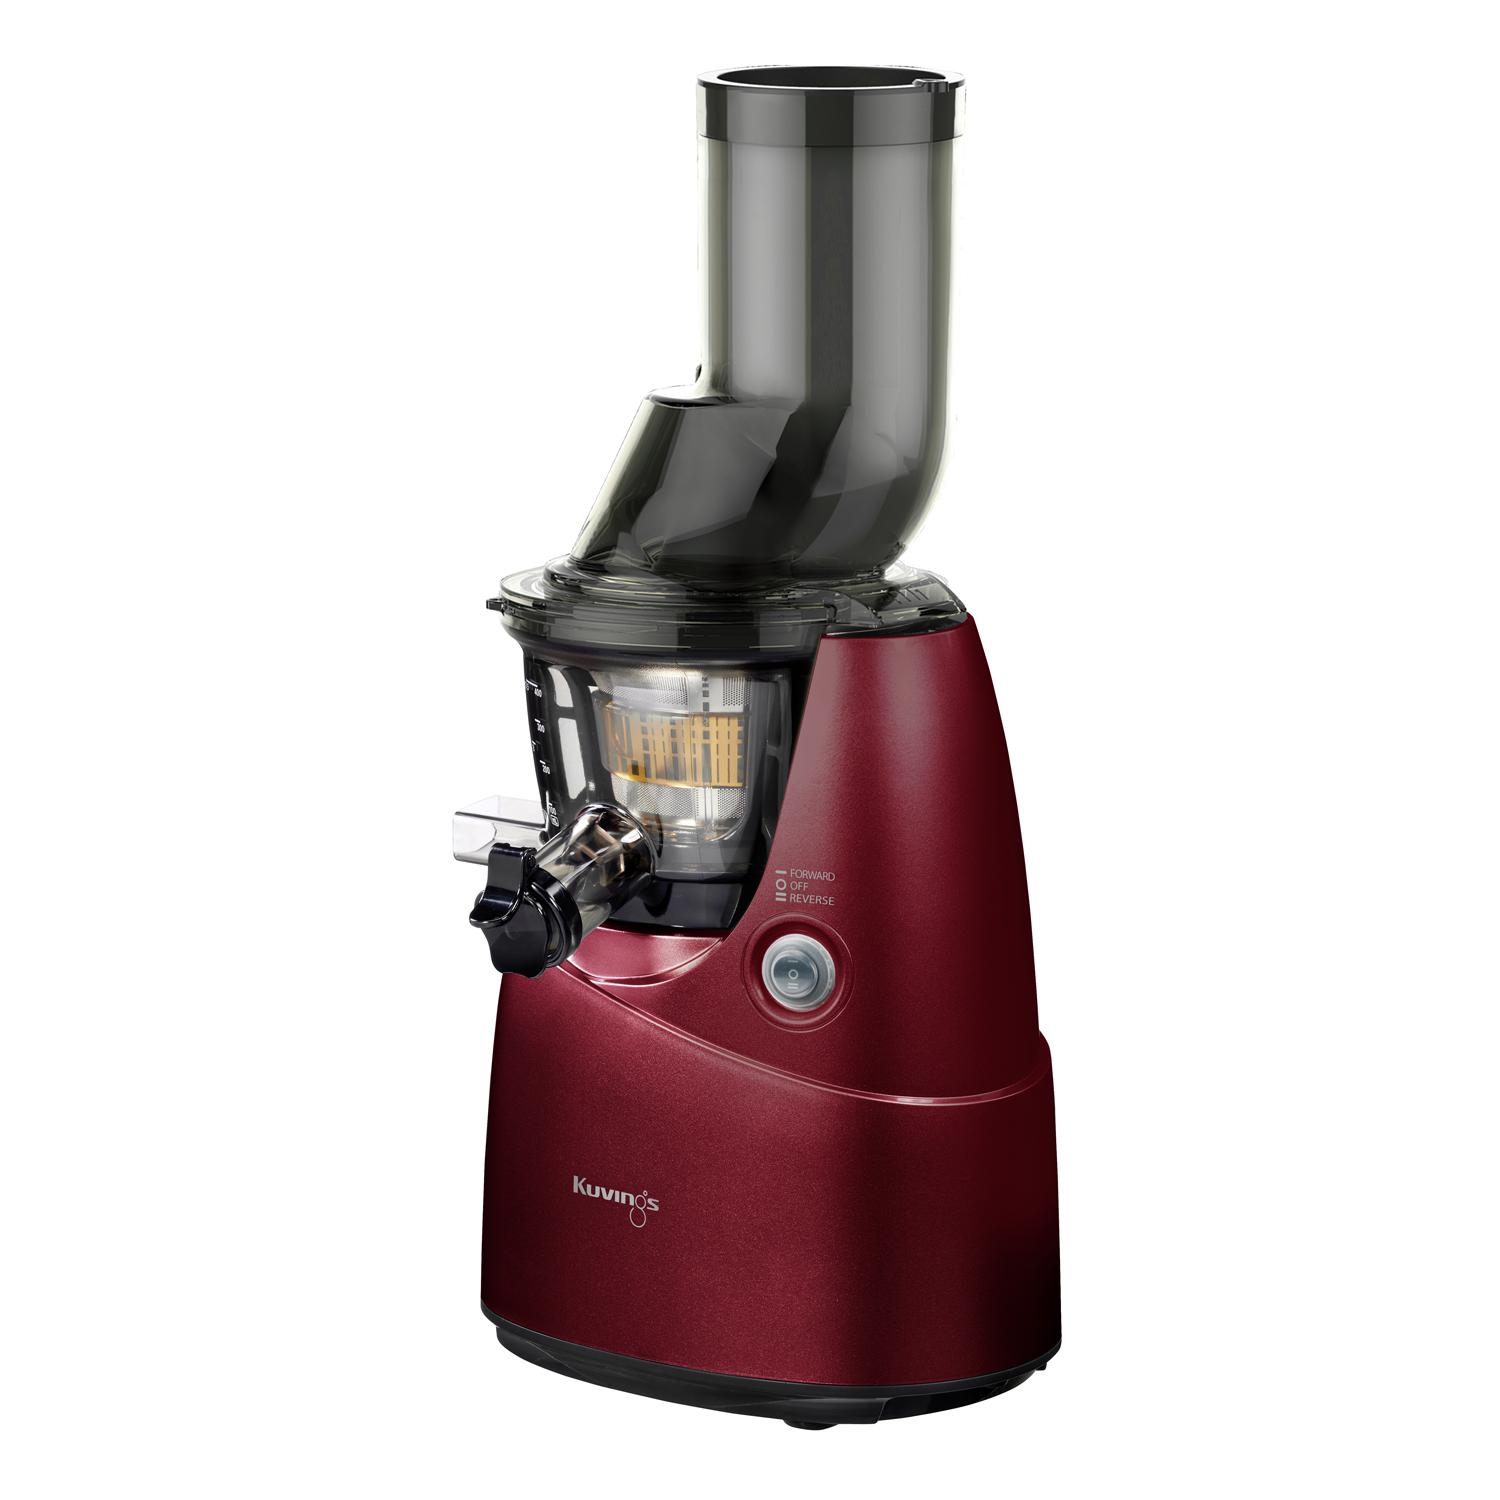 Wilfa Sj 150a Slow Juicer Review : Better Nutrition and Reduced Prep Time: Kuvings Introduces the Whole Slow Juicer Kitchenware ...